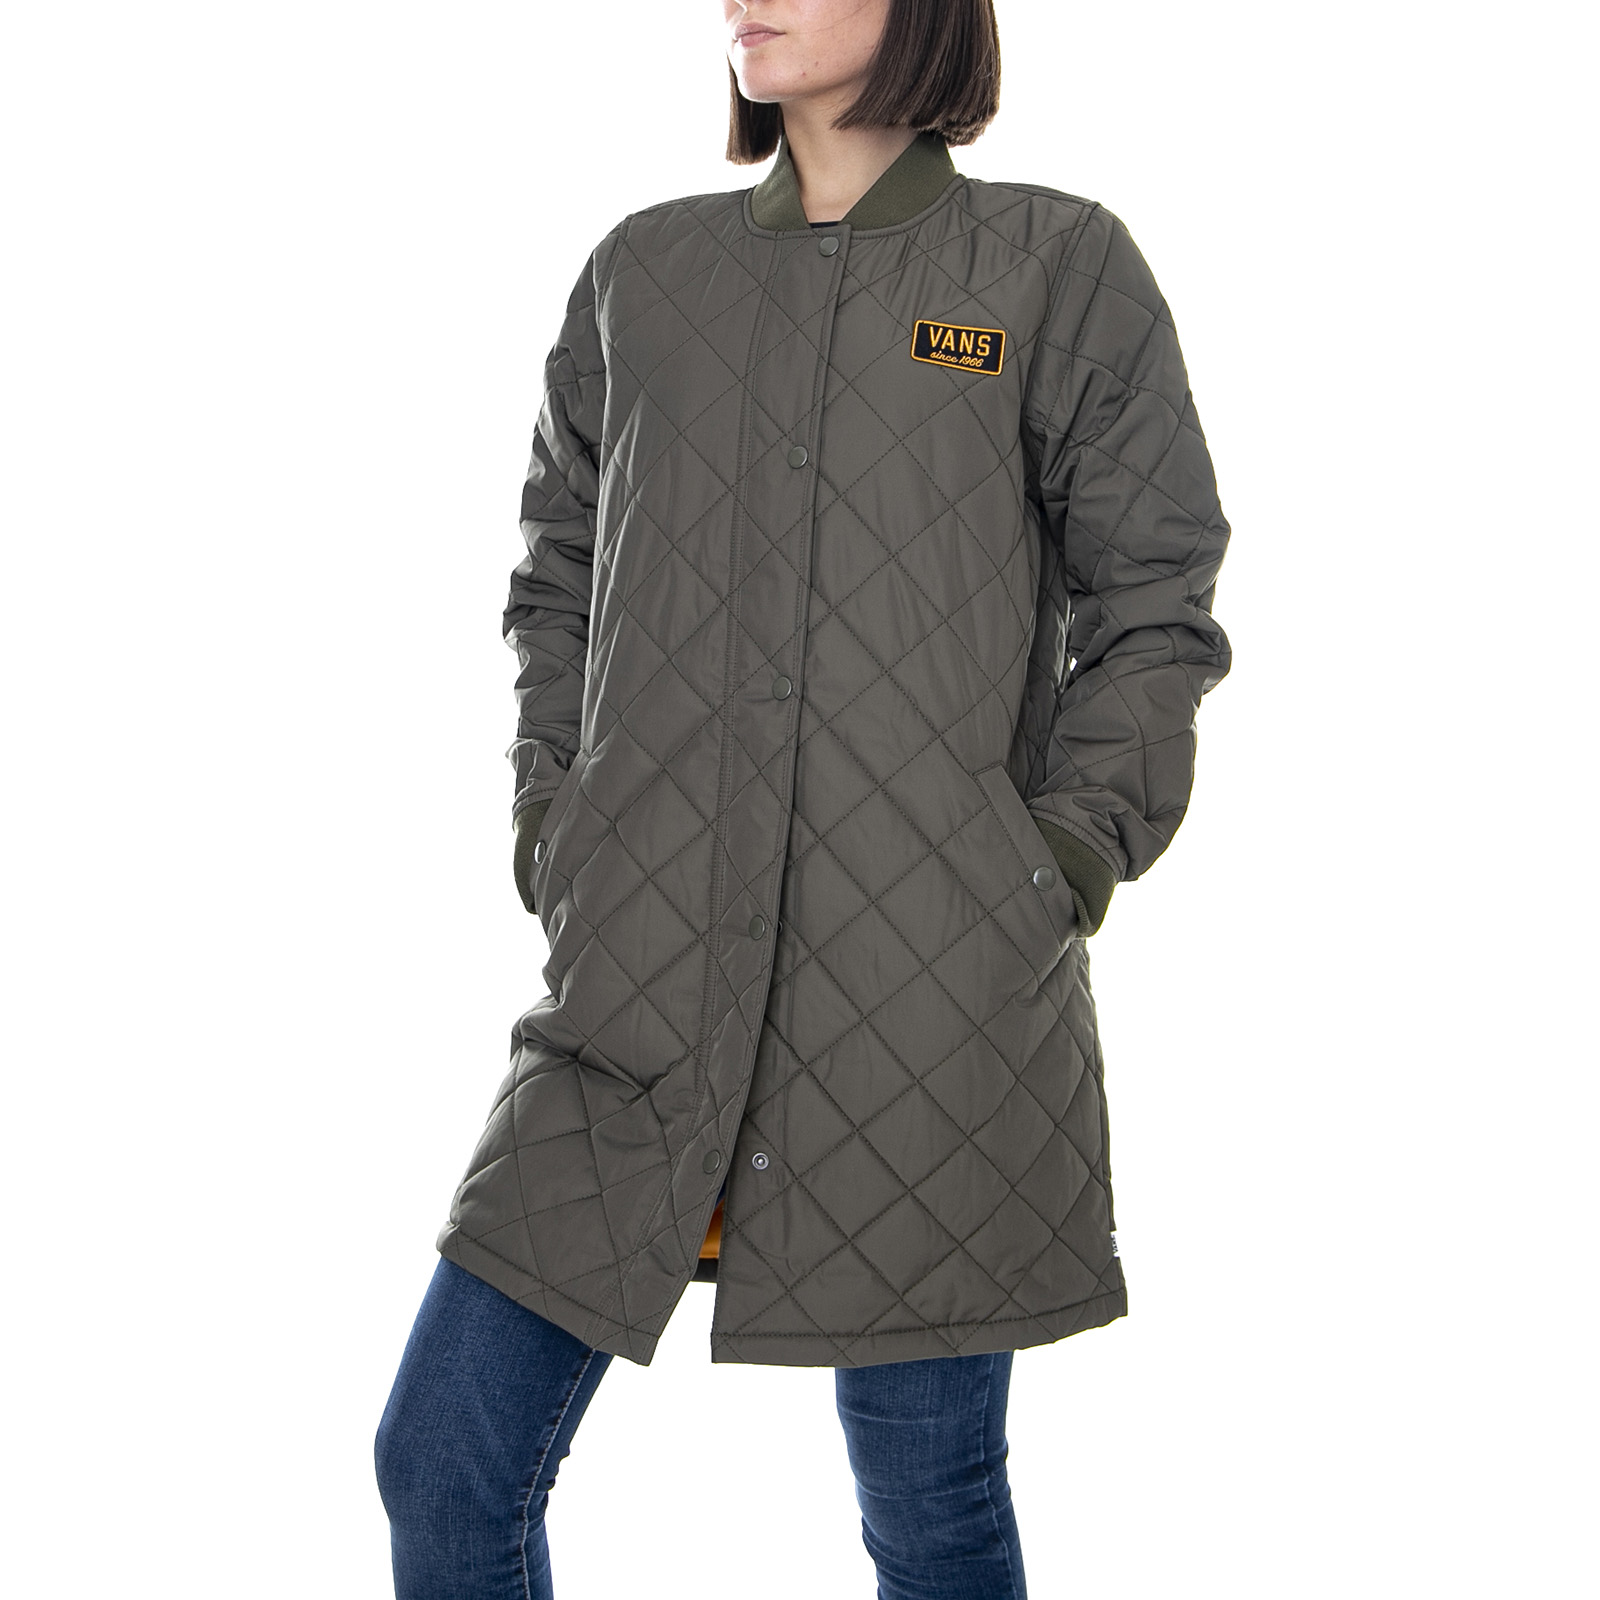 Details about Vans WM Boom Boom Quilted Grape Leaf Jacket Light Woman Green